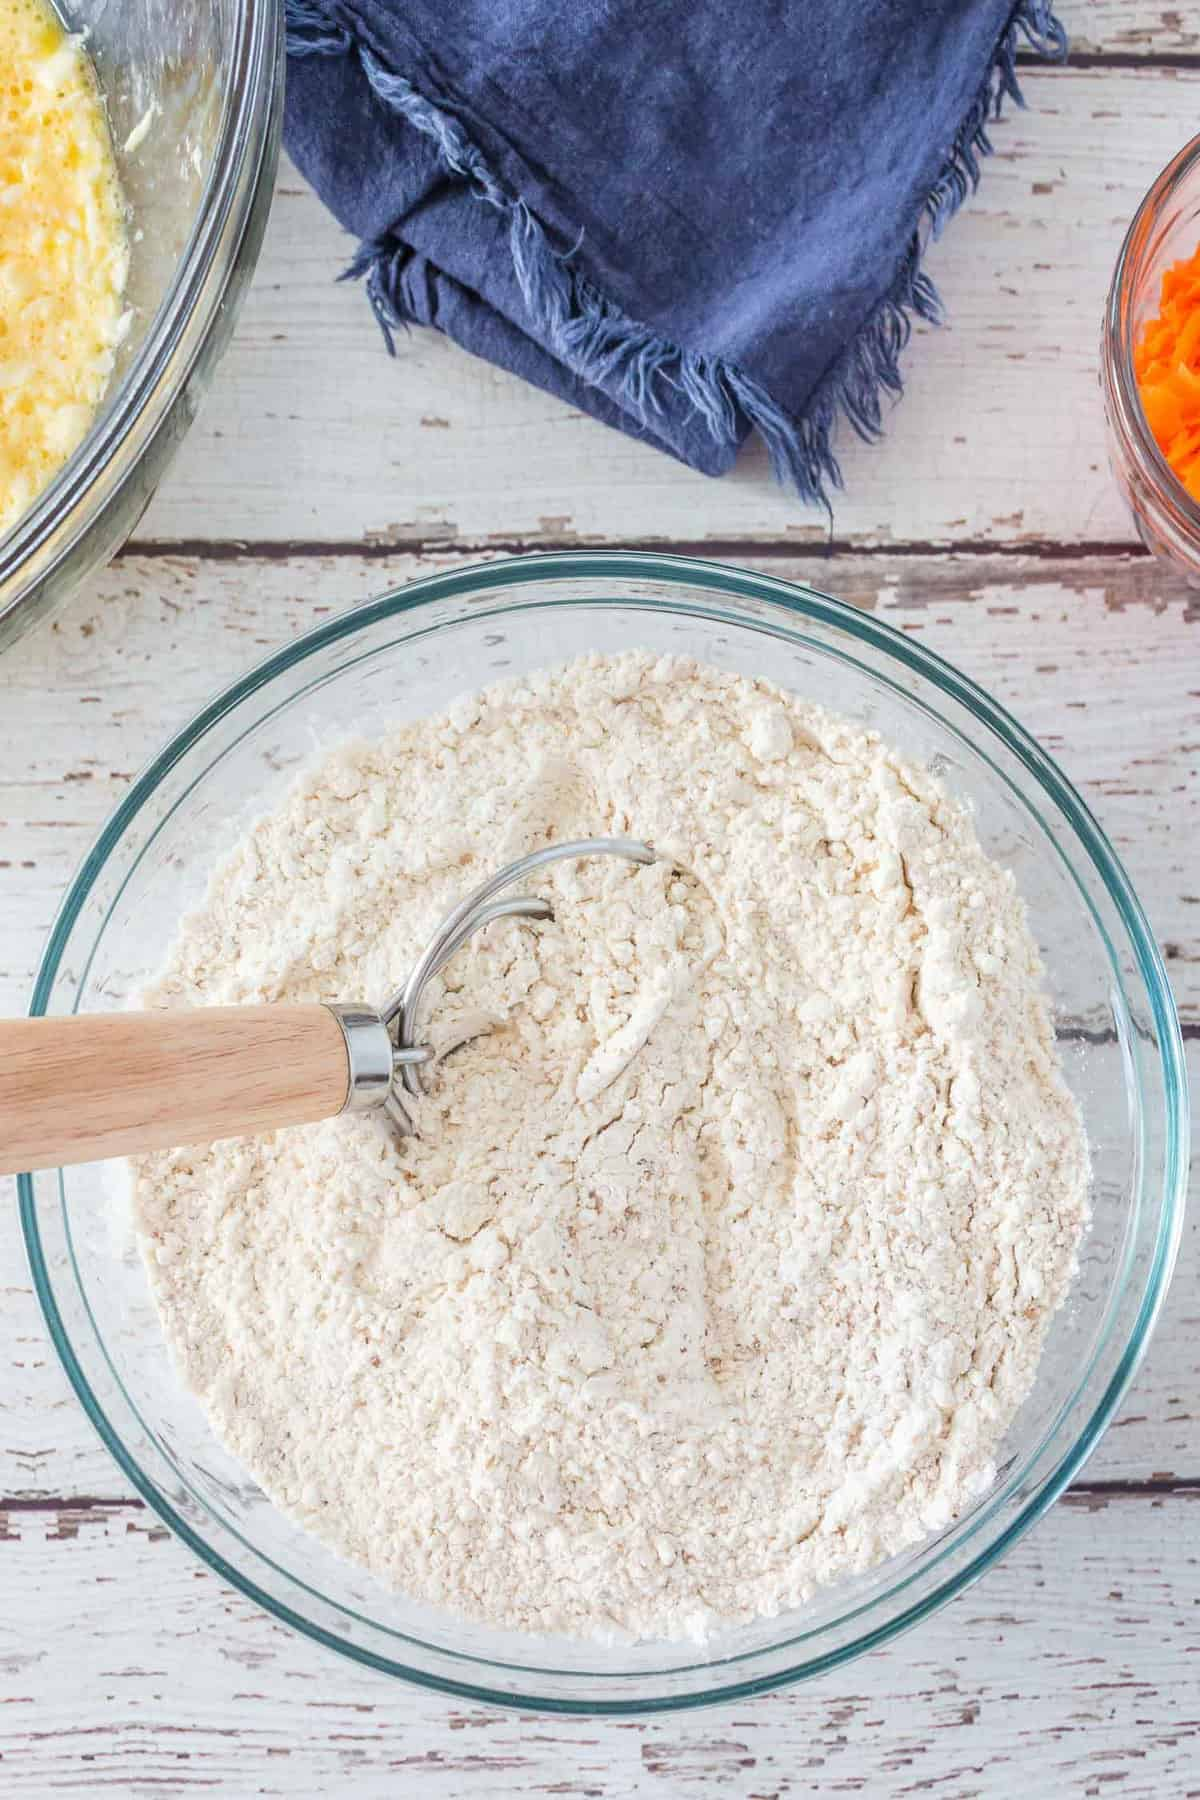 Dry ingredients in a glass bowl.